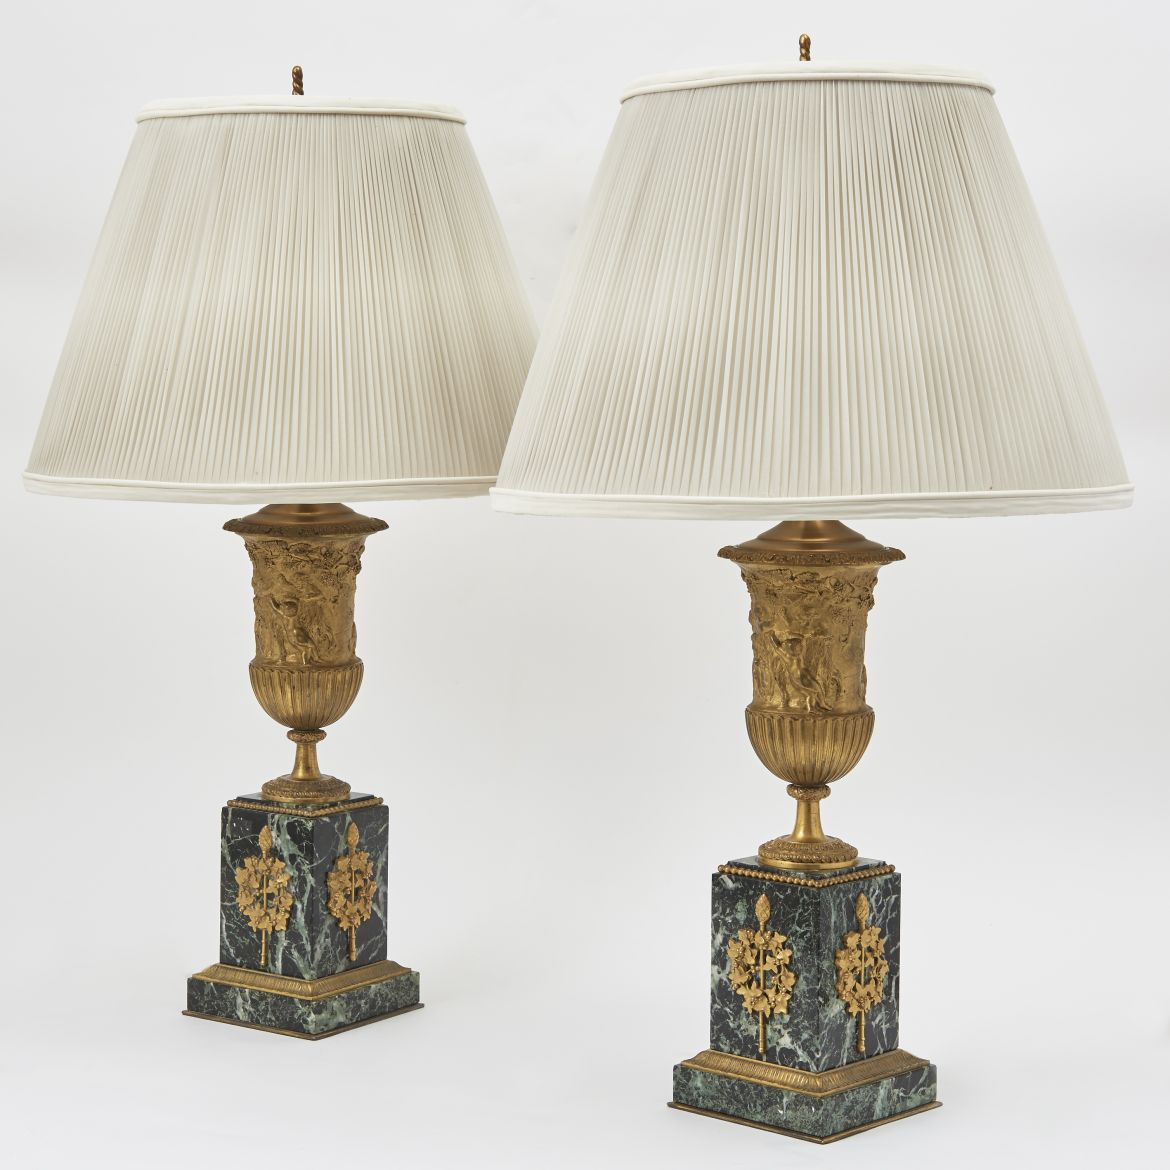 French Ormolu Urn Shaped Lamps